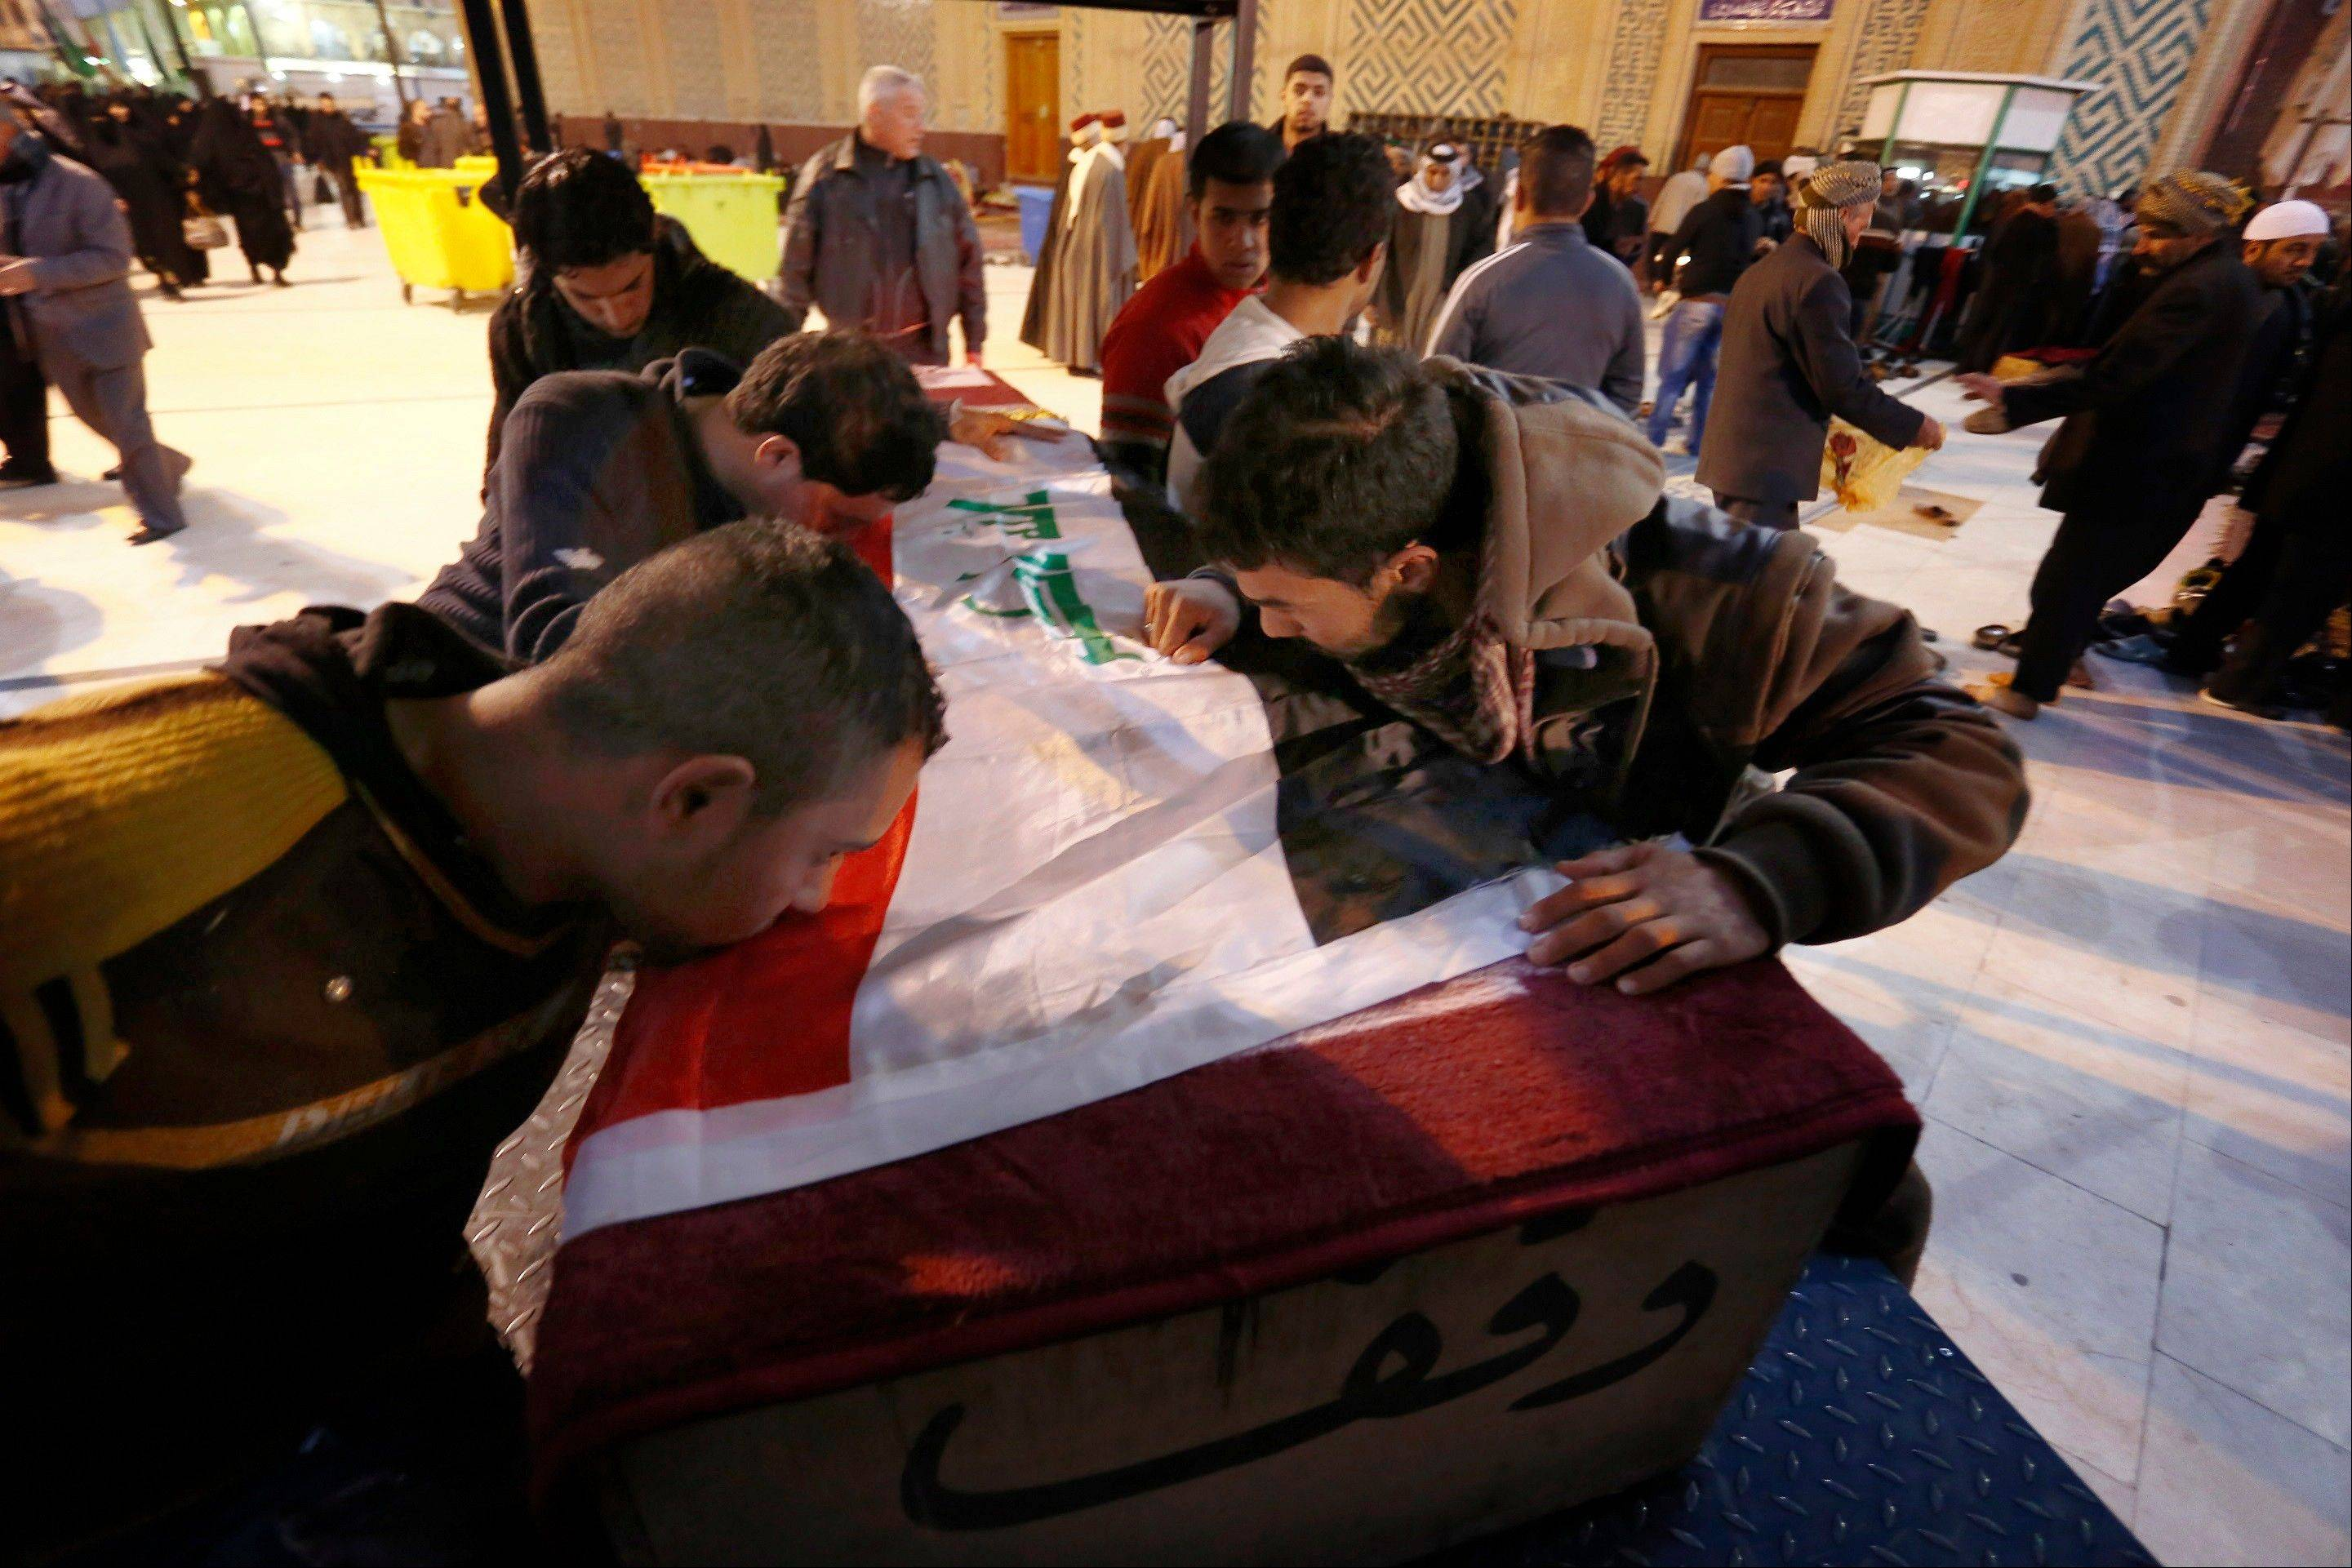 Sons of an Iraqi killed man, Karim Nasim, react during his funeral in the Shiite holy city of Najaf, 100 miles south of Baghdad, Iraq, Thursday. Nasim was killed in a bombing at a vegetable market in Baghdad on Wednesday. According to U.N. estimates, more than 8,000 people have been killed since the start of the year.